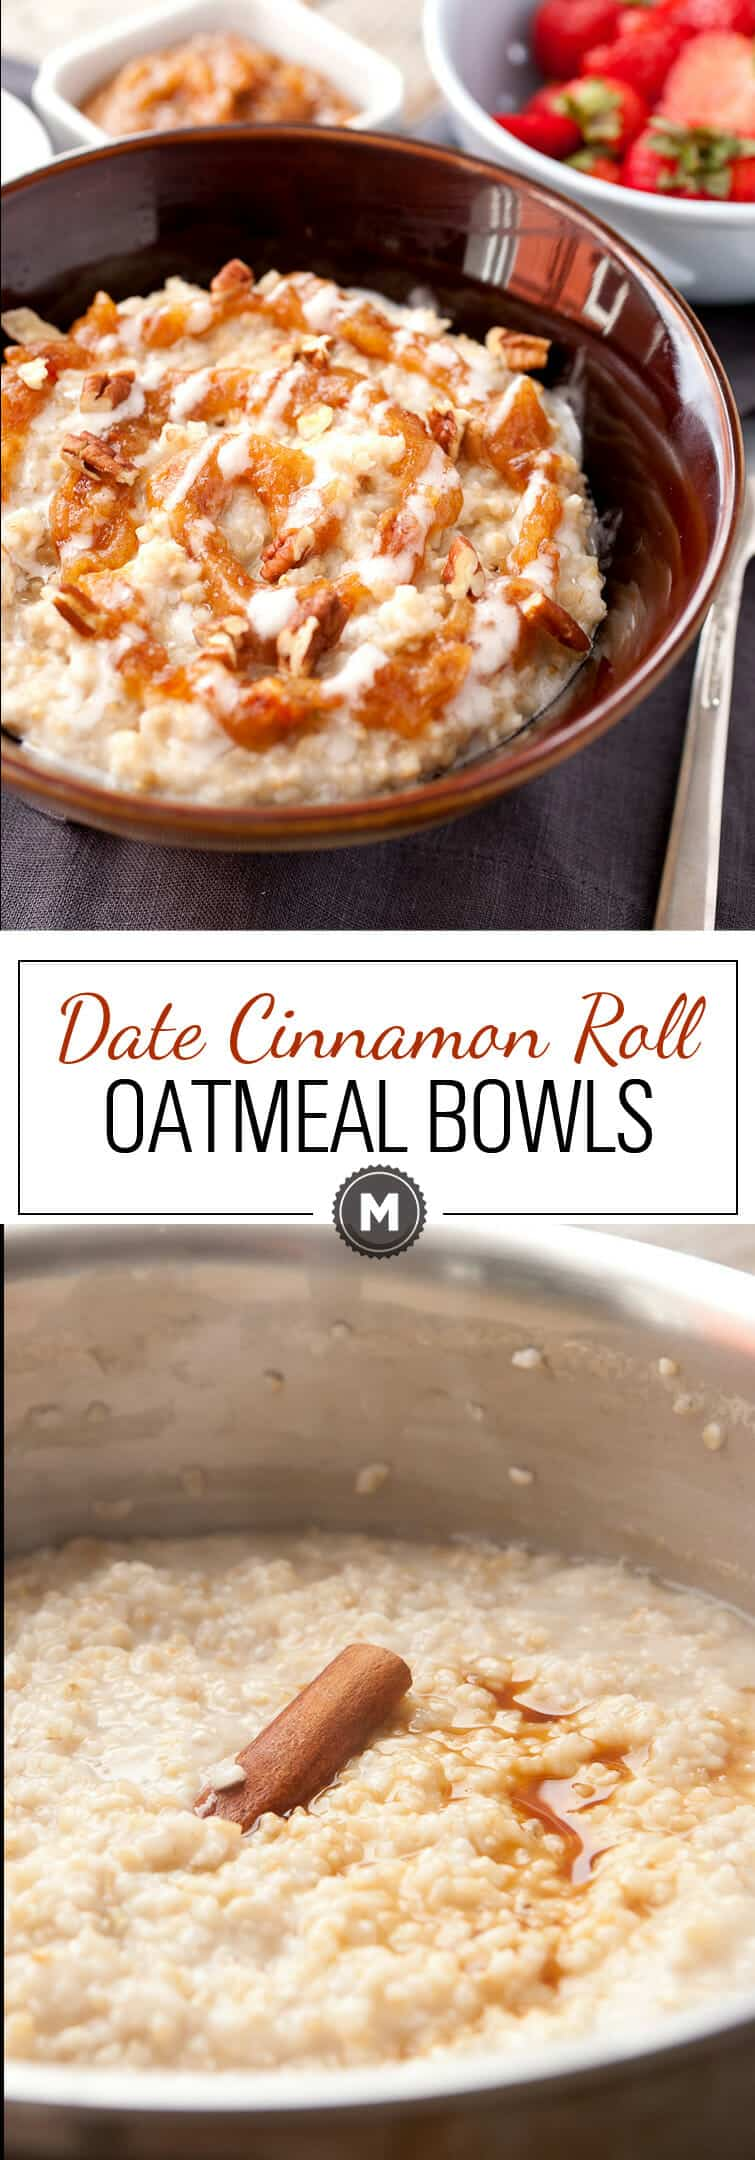 Date Cinnamon Roll Oatmeal Bowls: Steel-cut oatmeal slow-simmered with cinnamon and vanilla and topped with two perfect cinnamon roll toppings. Instead of just brown sugar though, I like to use dates! | macheesmo.com